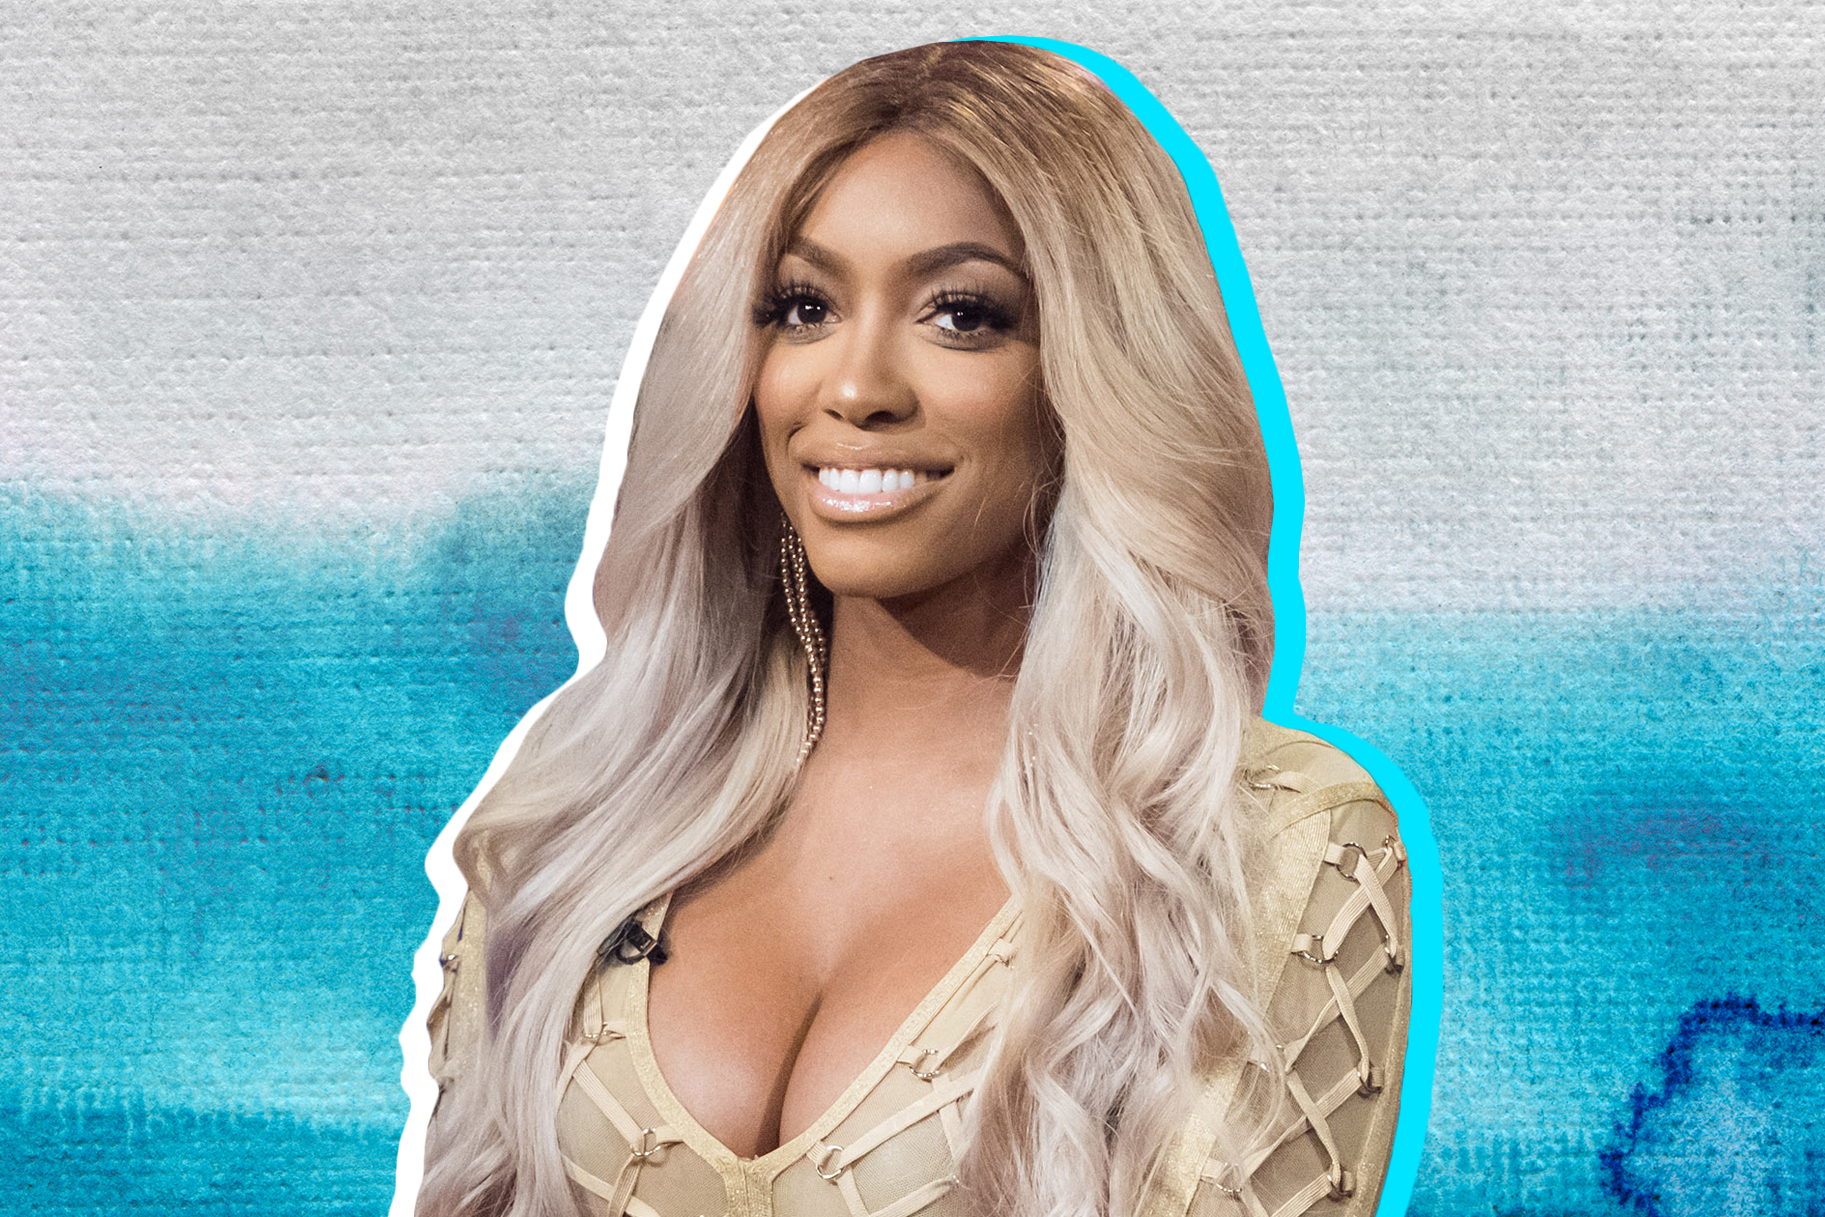 Porsha Williams Will Make Your Day With These Clips From The Beach